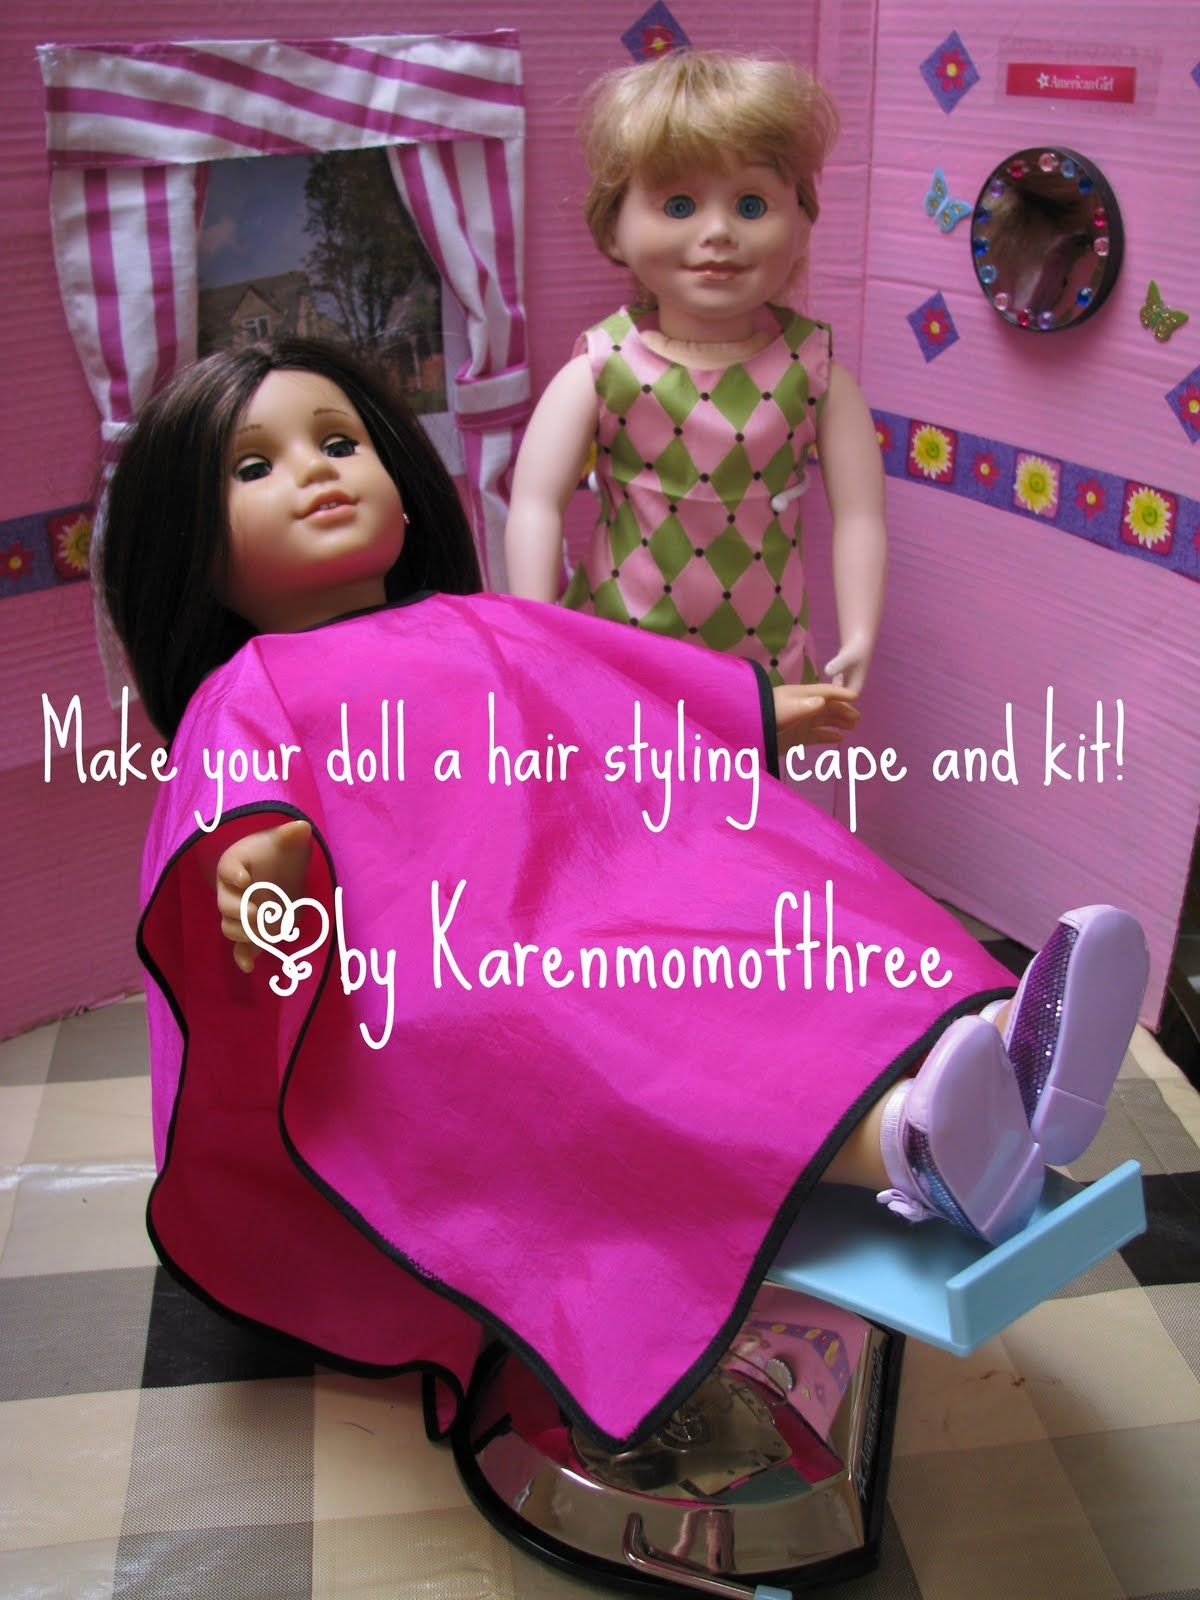 Karen mom of three's craft blog: Make your own doll hairstyling cape and hair care kit